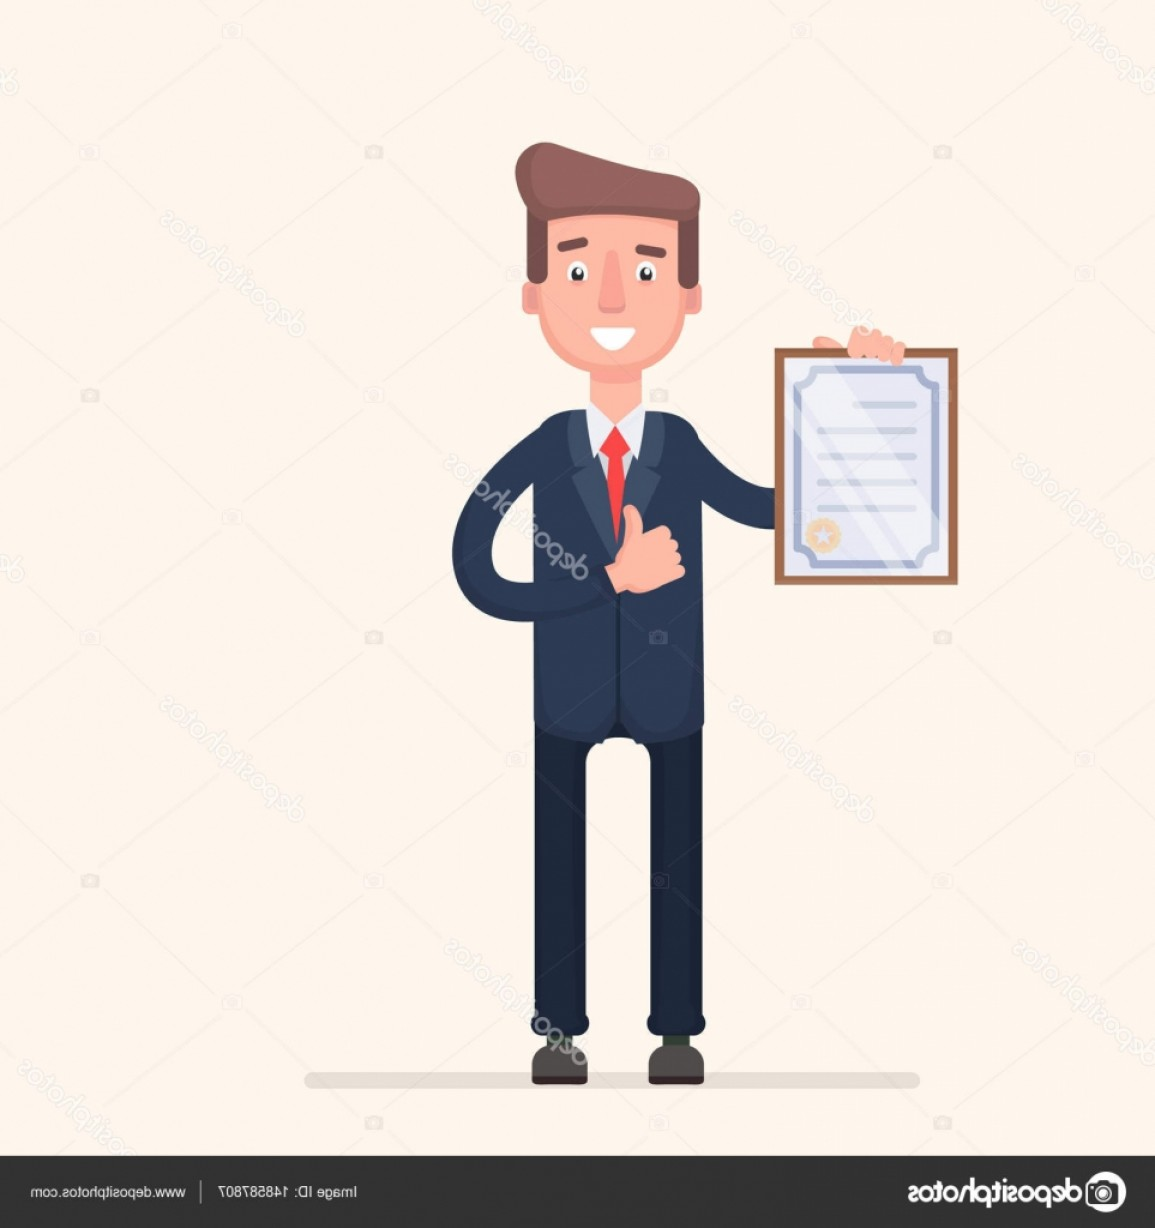 Standing Diploma Vector: Stock Illustration Standing Business Man Holding Certificate